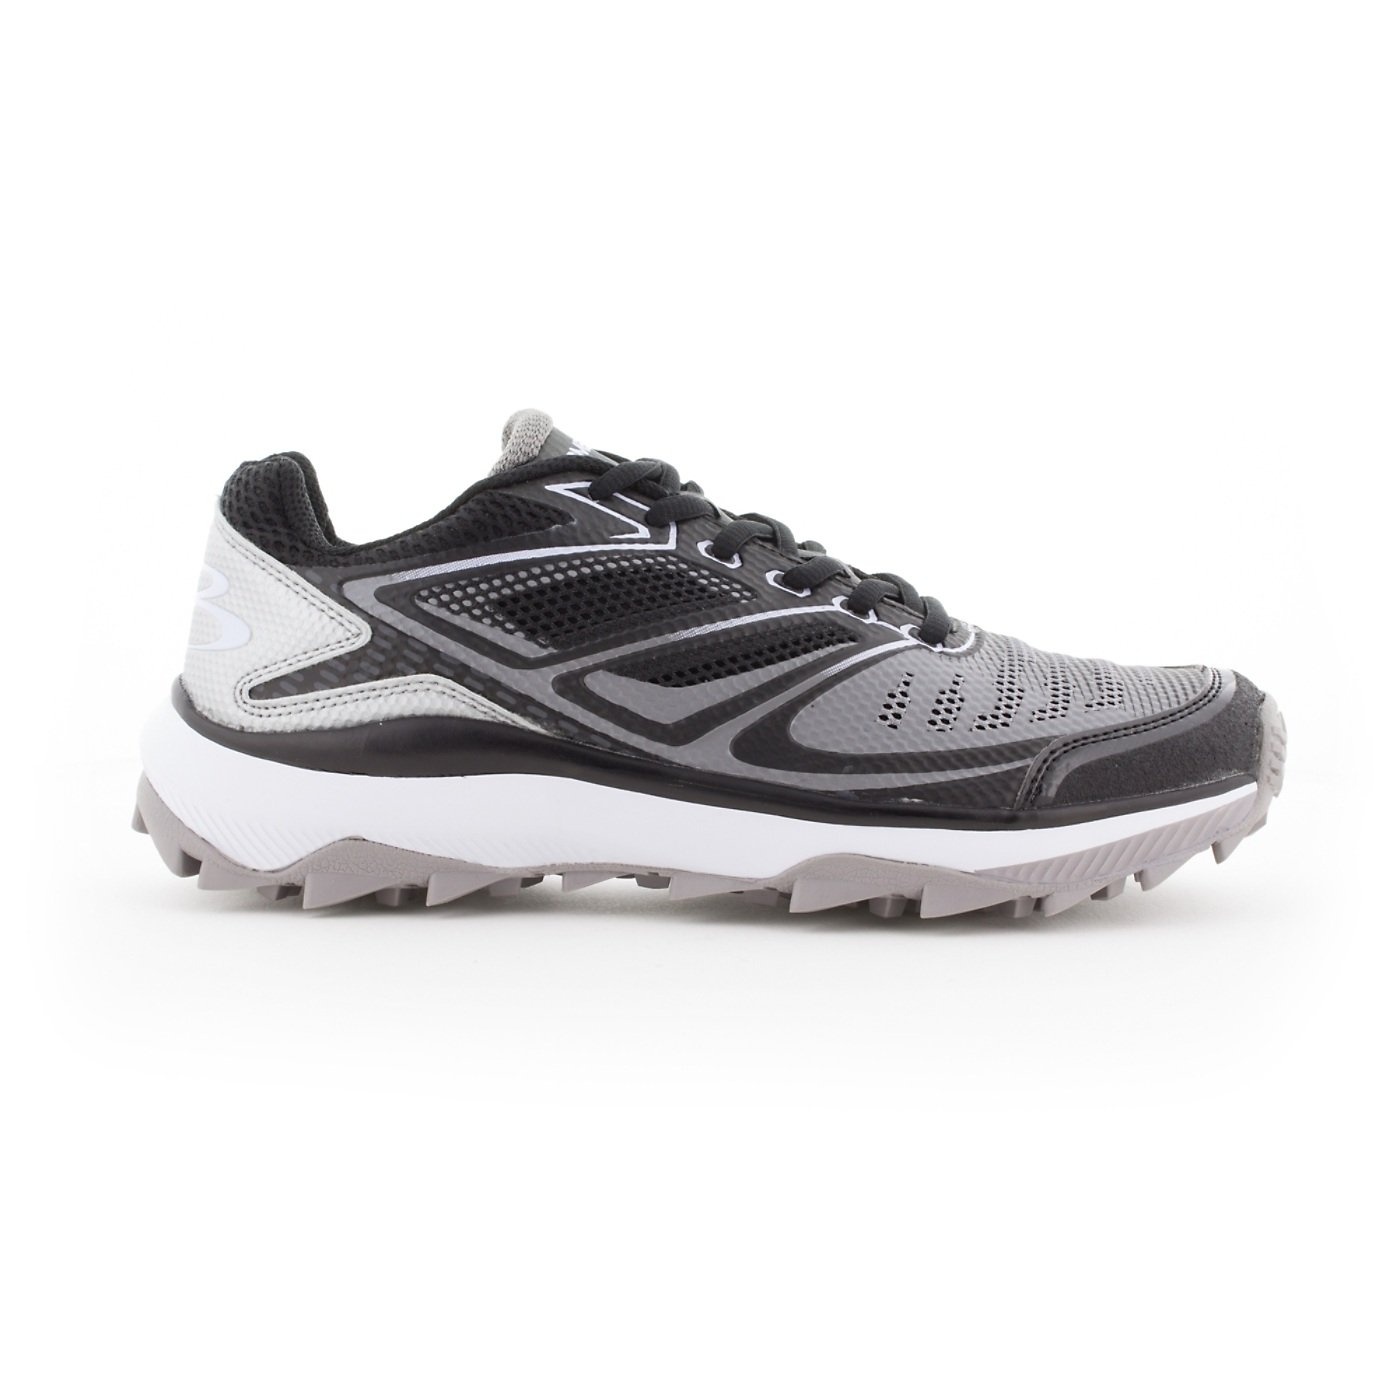 Boombah Men's Turbine Turf Shoes - 20 Color Options - Multiple Sizes B076JPYXV1 12|Black/Gray